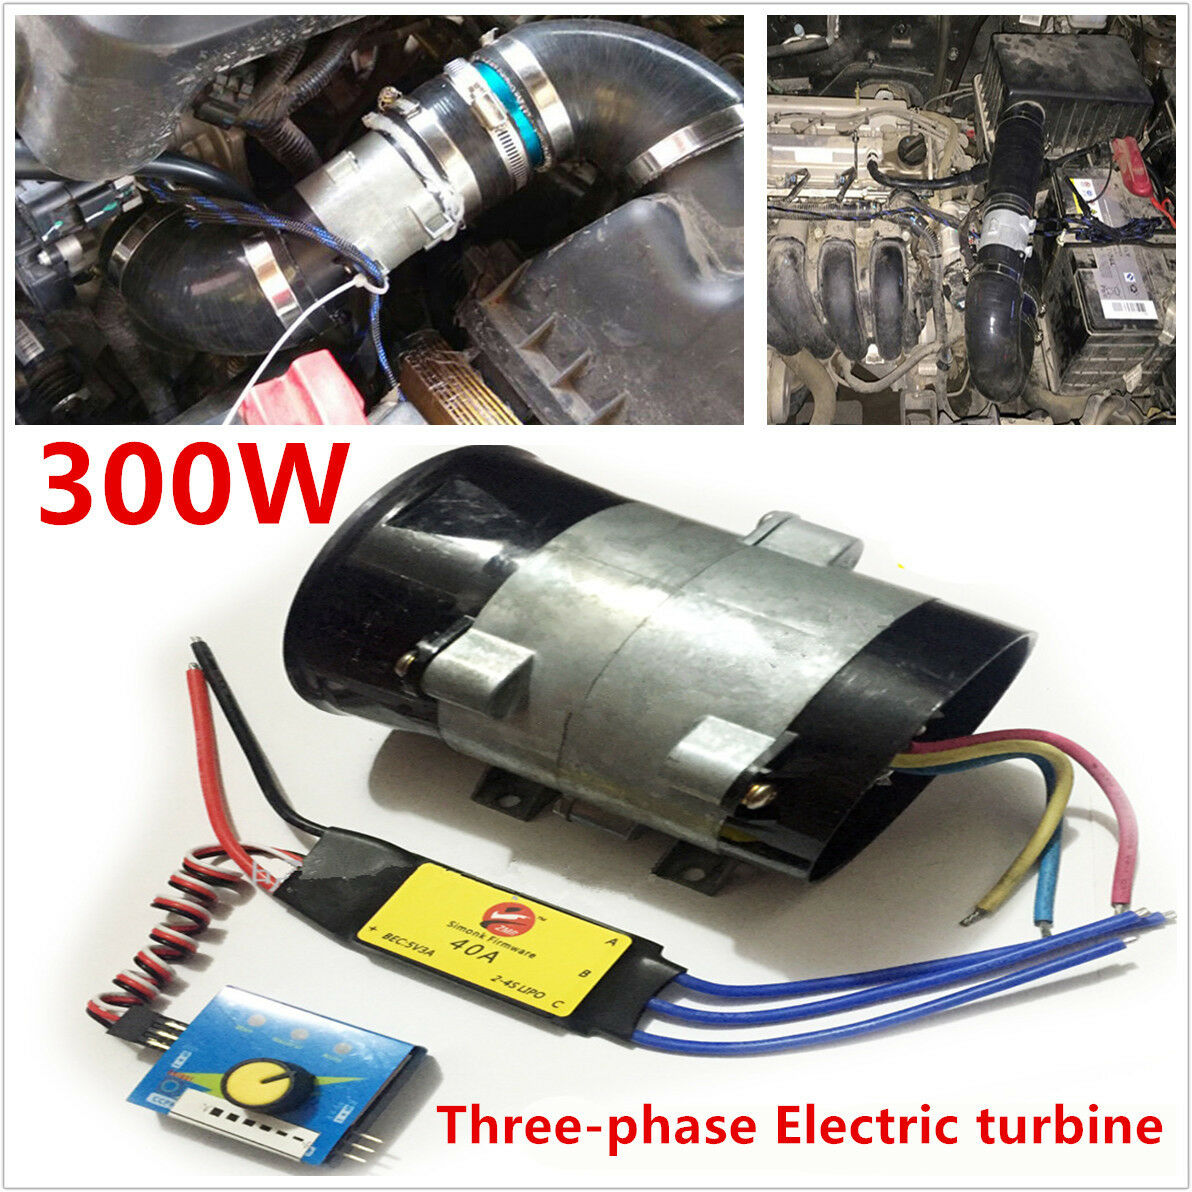 Electric Supercharger Australia: CAR TURBO KIT Electric Turbo Supercharger Air Filter